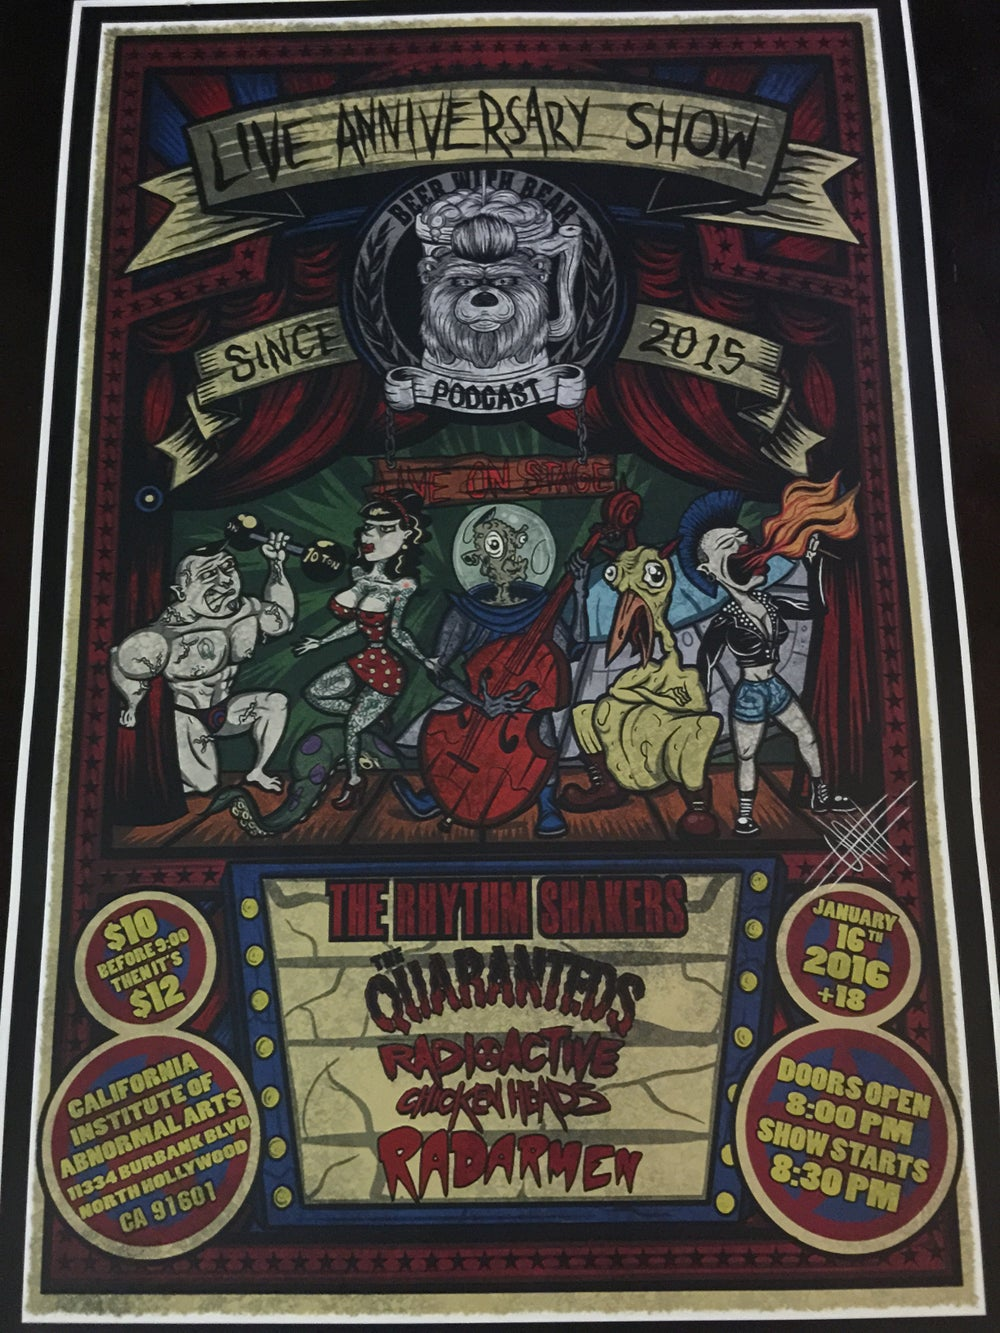 Image of 12 by 18 inch event poster (original art by Olaf Ace)